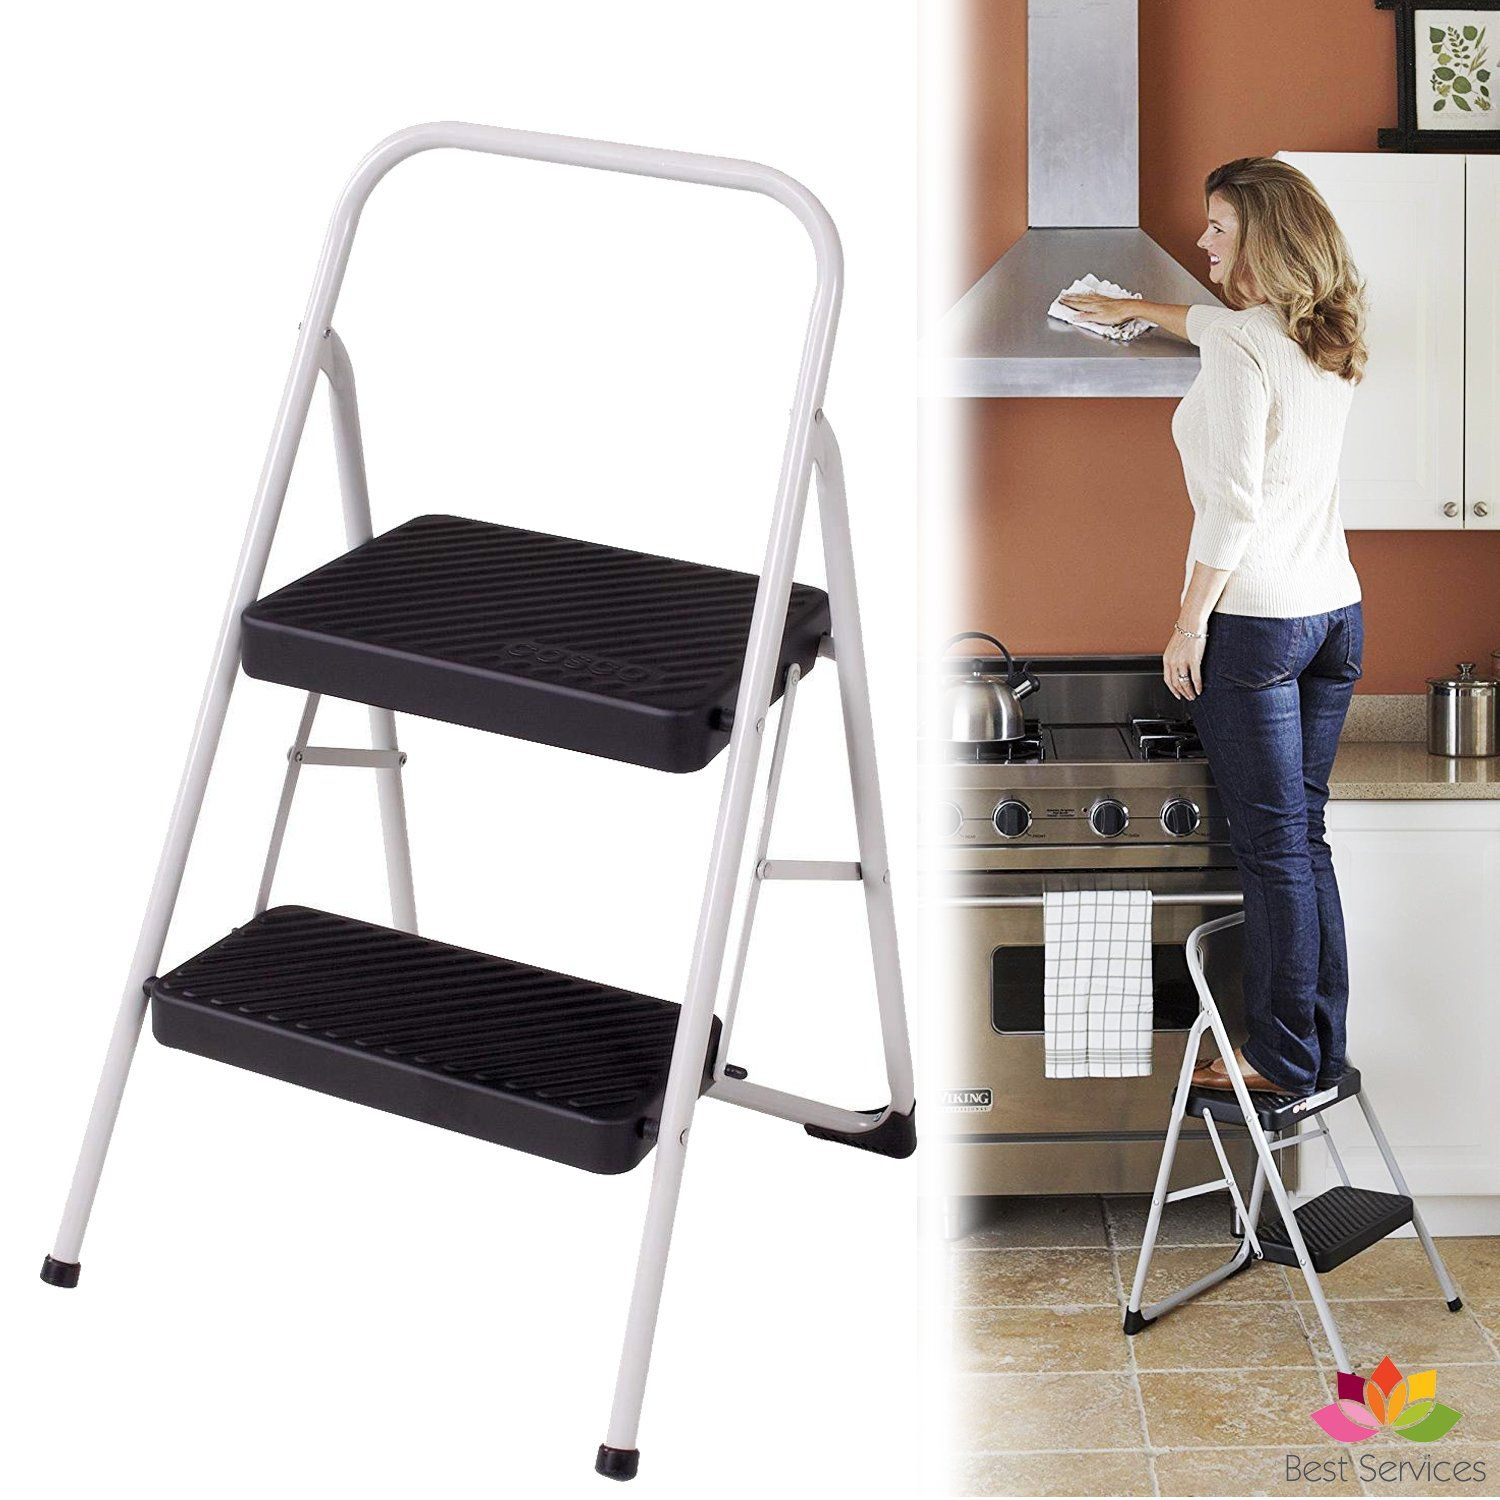 Enjoyable This Sturdy Two Step Steel Step Stool Has Steel Frame And Pdpeps Interior Chair Design Pdpepsorg